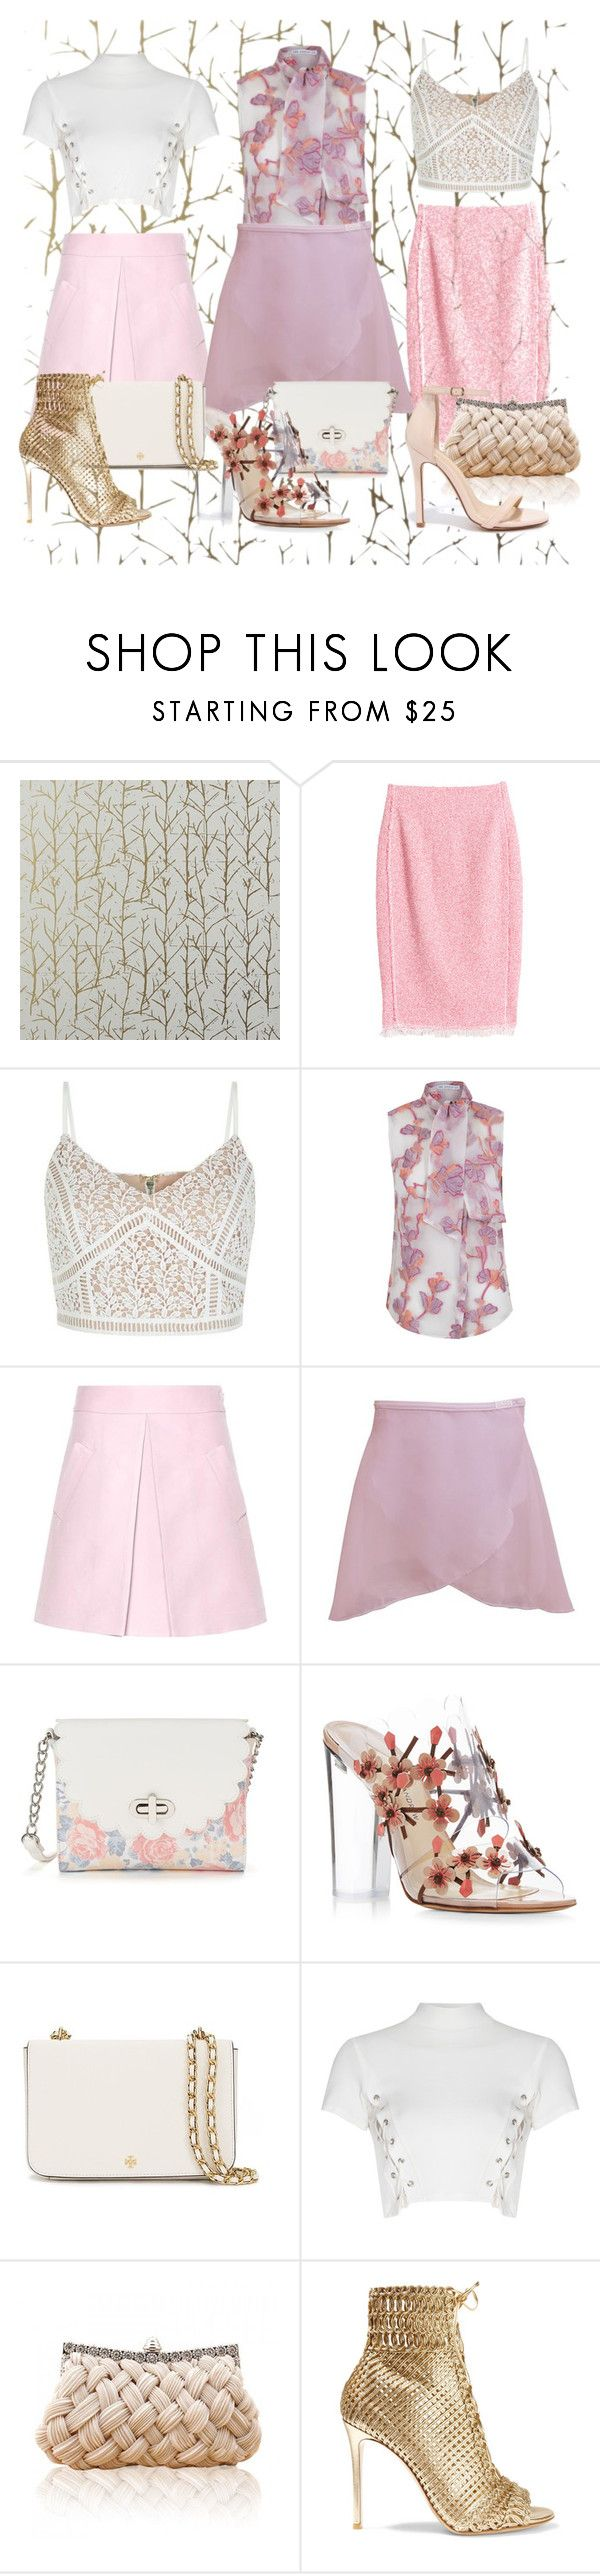 """Розовые юбки"" by inna2105 ❤ liked on Polyvore featuring CB2, Rebecca Taylor, New Look, The 2nd Skin Co., Marni, Candie's, Paul Andrew, Tory Burch, Glamorous and Gianvito Rossi"